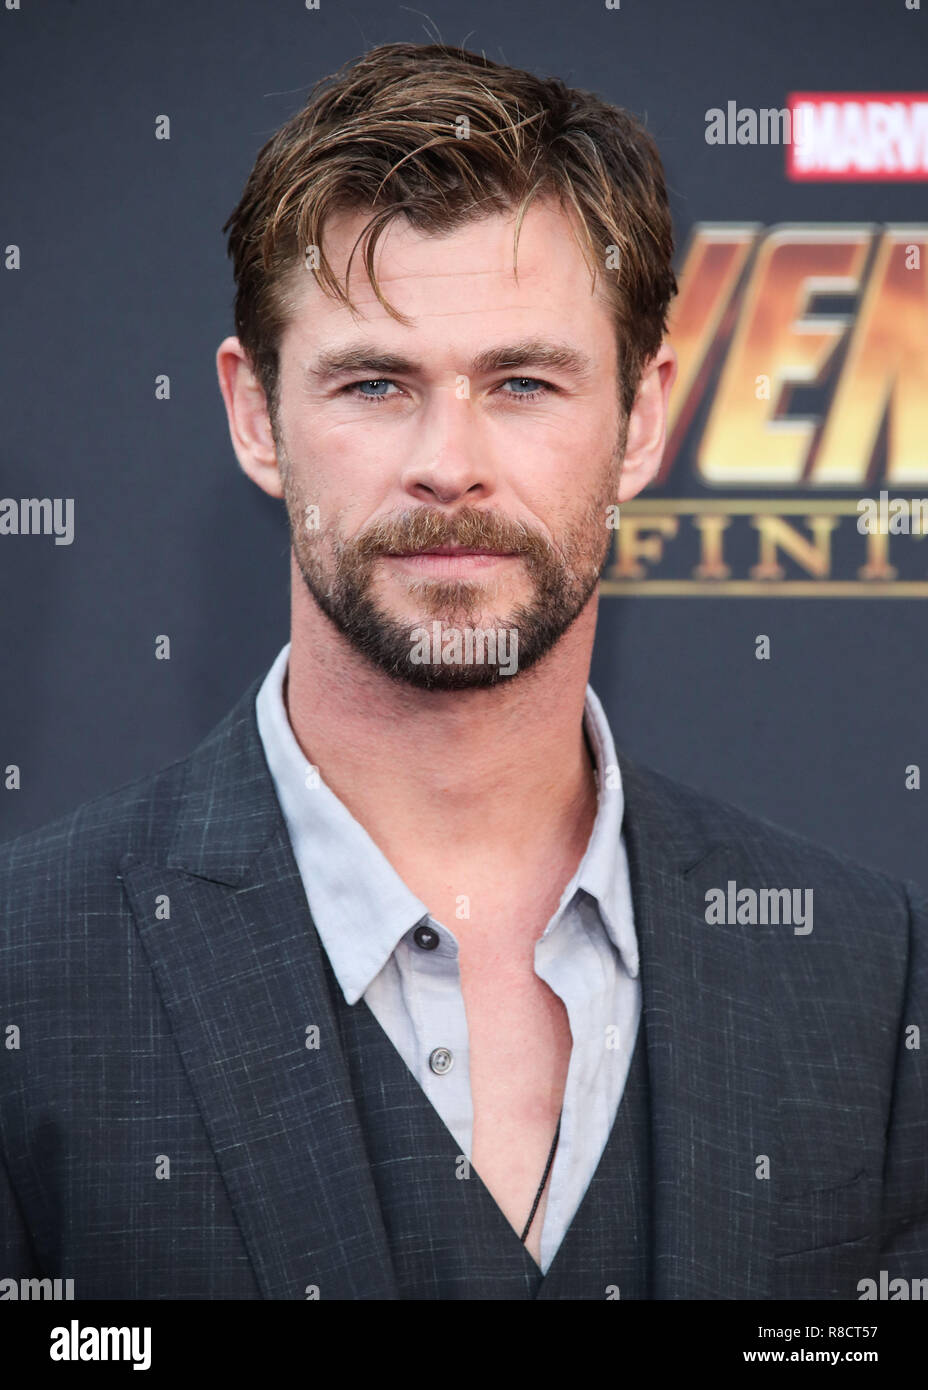 HOLLYWOOD, LOS ANGELES, CA, USA - APRIL 23: Chris Hemsworth at the World Premiere Of Disney And Marvel's 'Avengers: Infinity War' held at the El Capitan Theatre, Dolby Theatre and TCL Chinese Theatre IMAX on April 23, 2018 in Hollywood, Los Angeles, California, United States. (Photo by Xavier Collin/Image Press Agency) Stock Photo